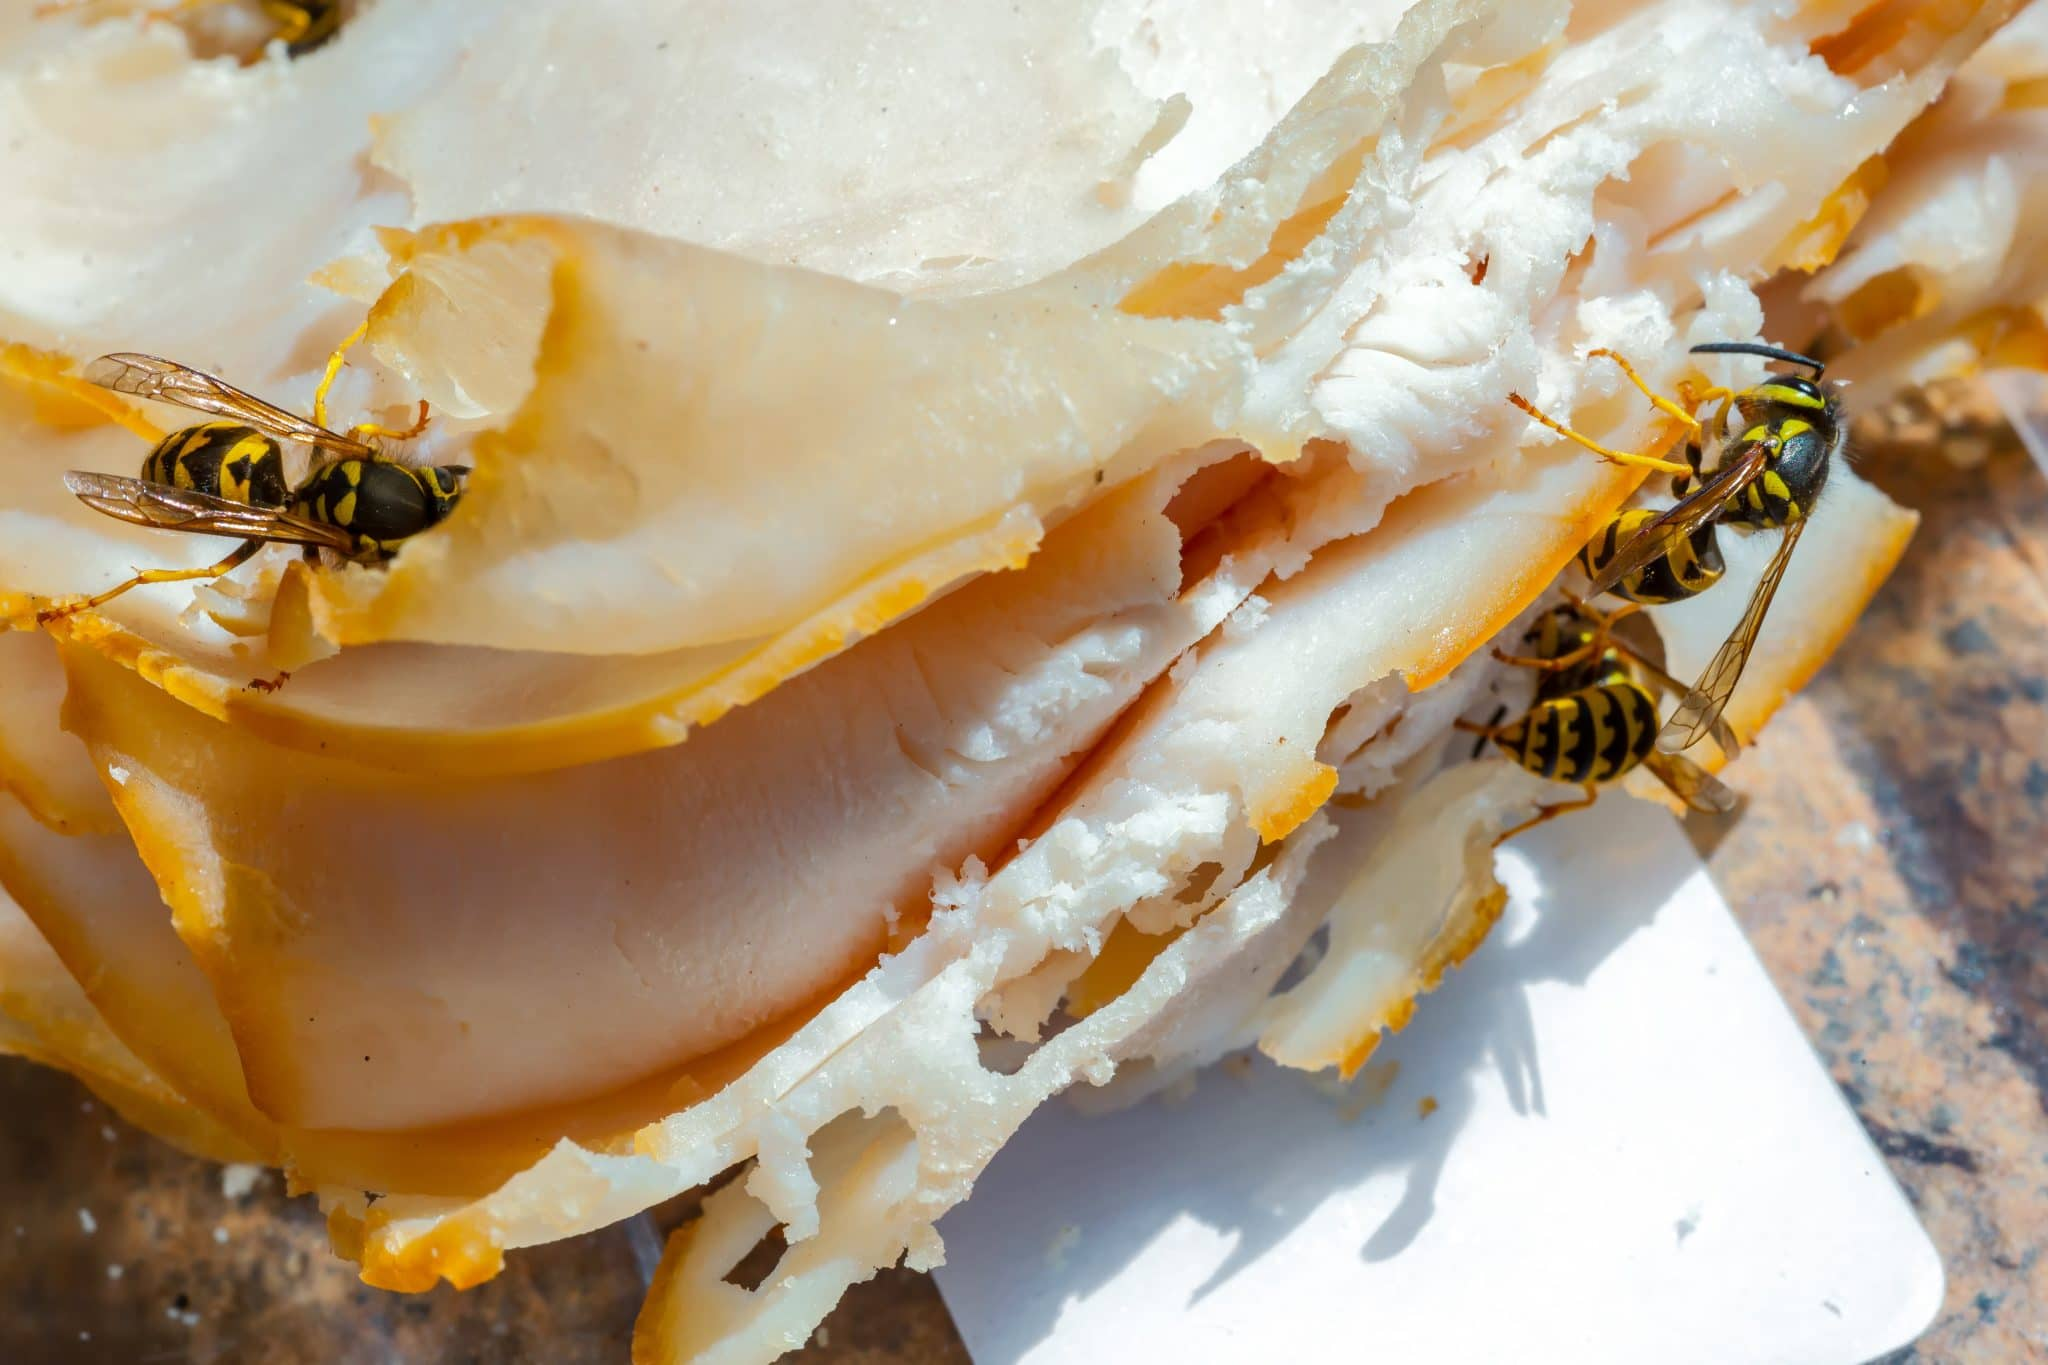 yellow jackets are feeding on a ham sandwich.